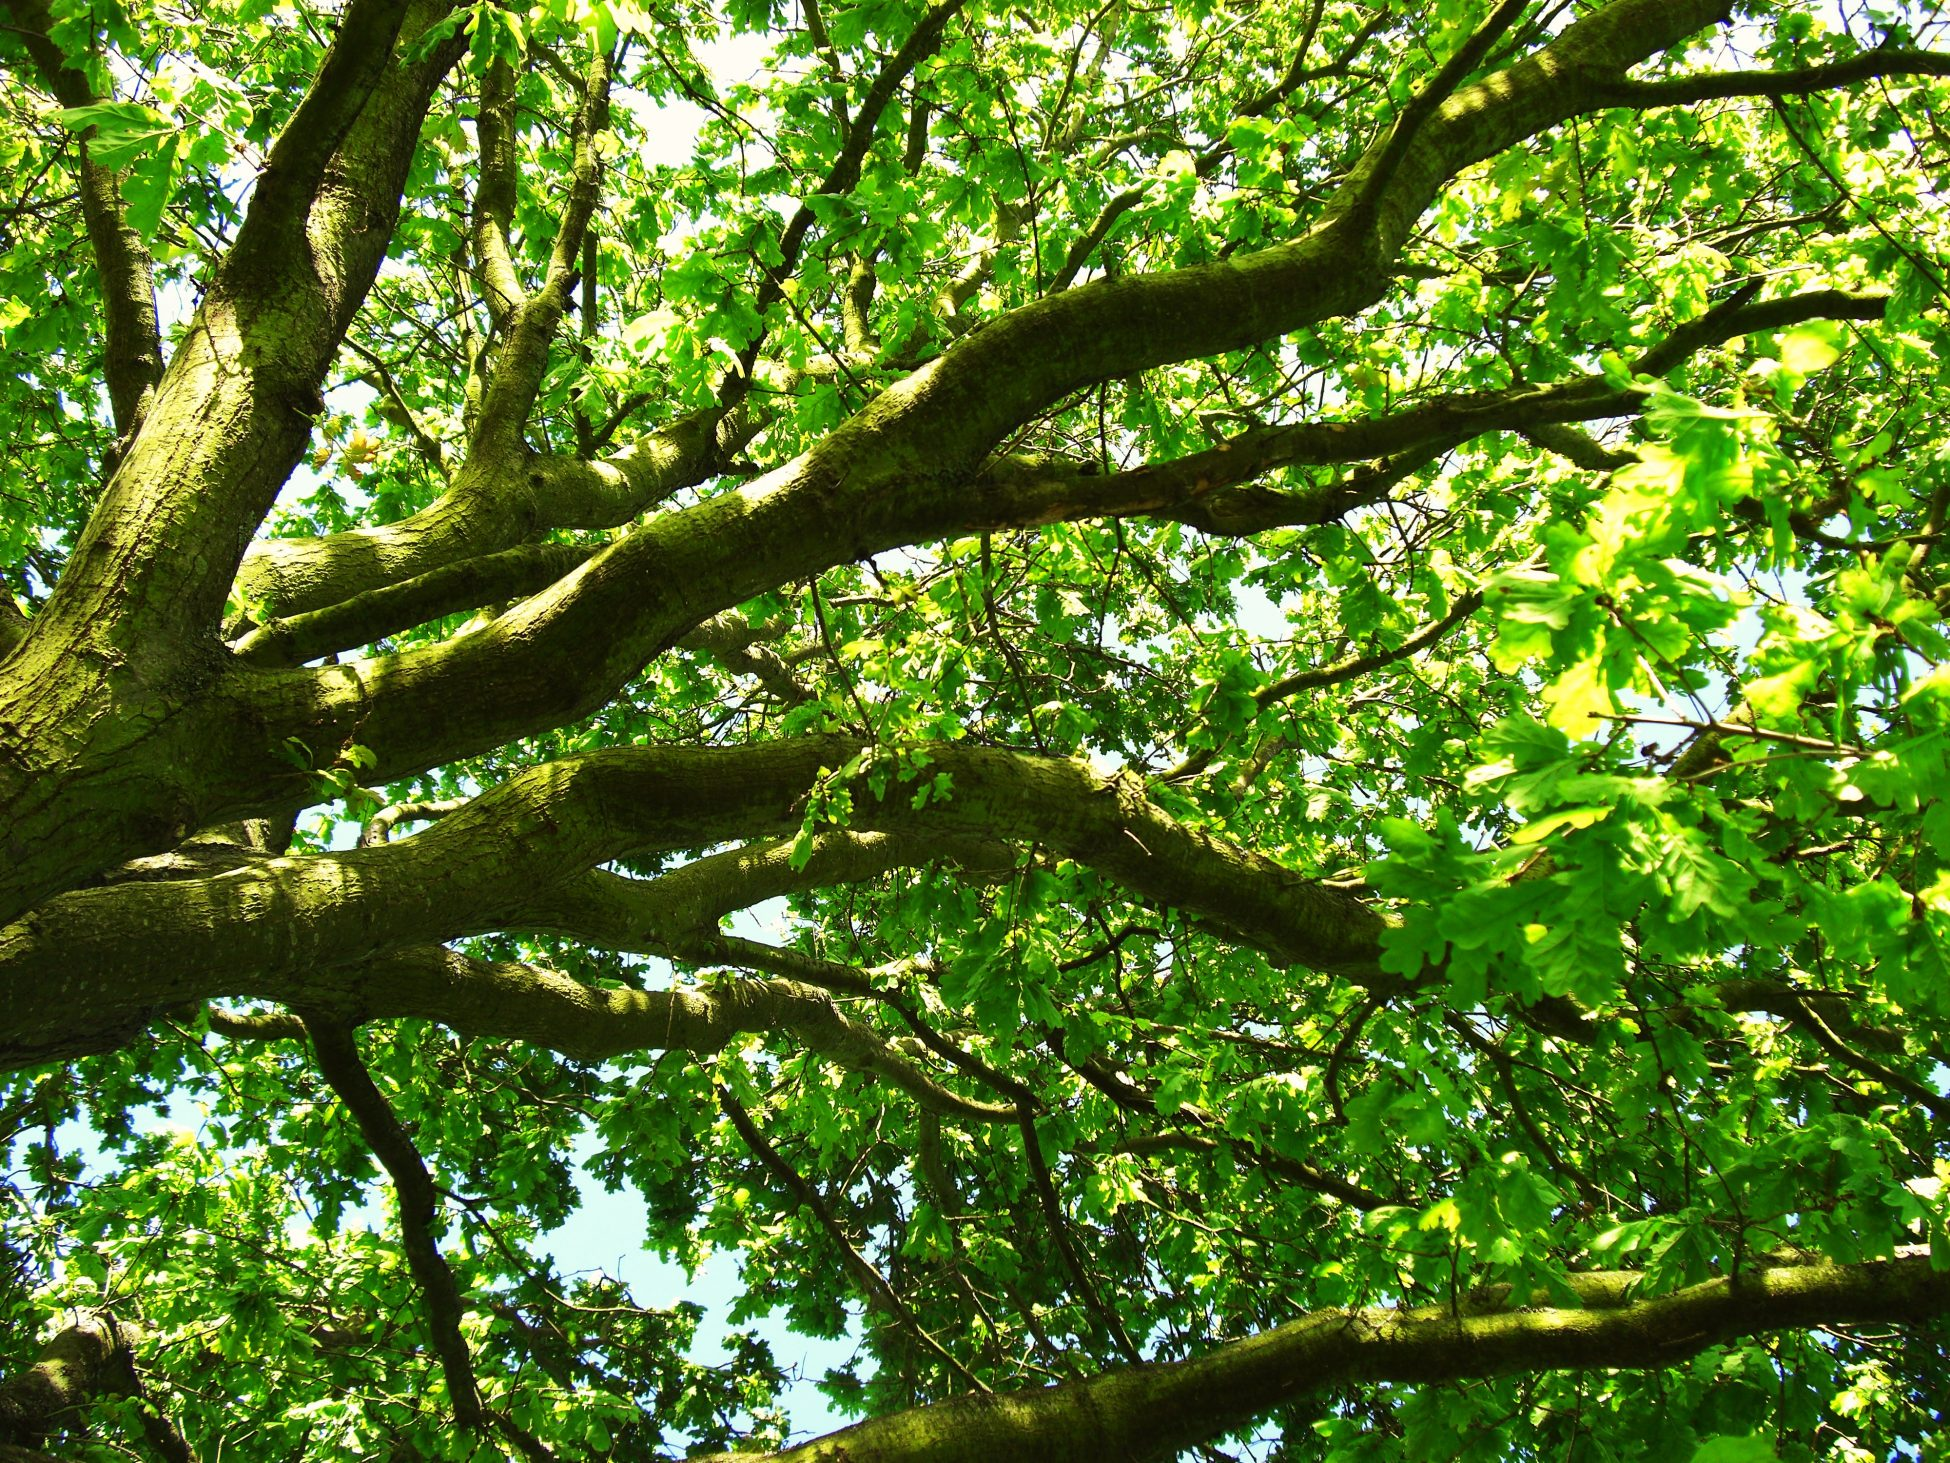 Close up photo of tree branches and green leaves